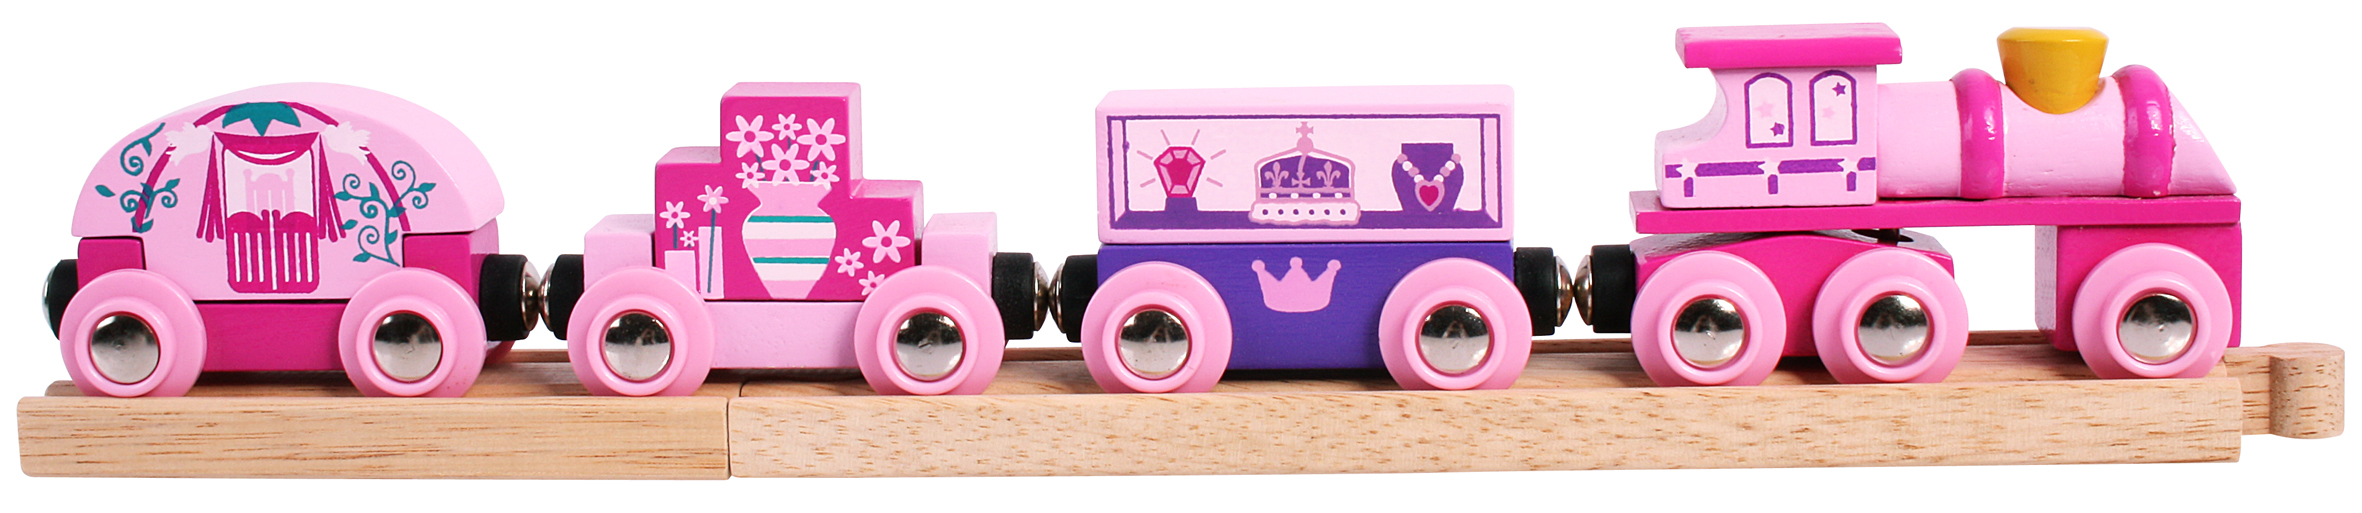 Bigjigs Princess Train, £!4, nrmshop.co.uk